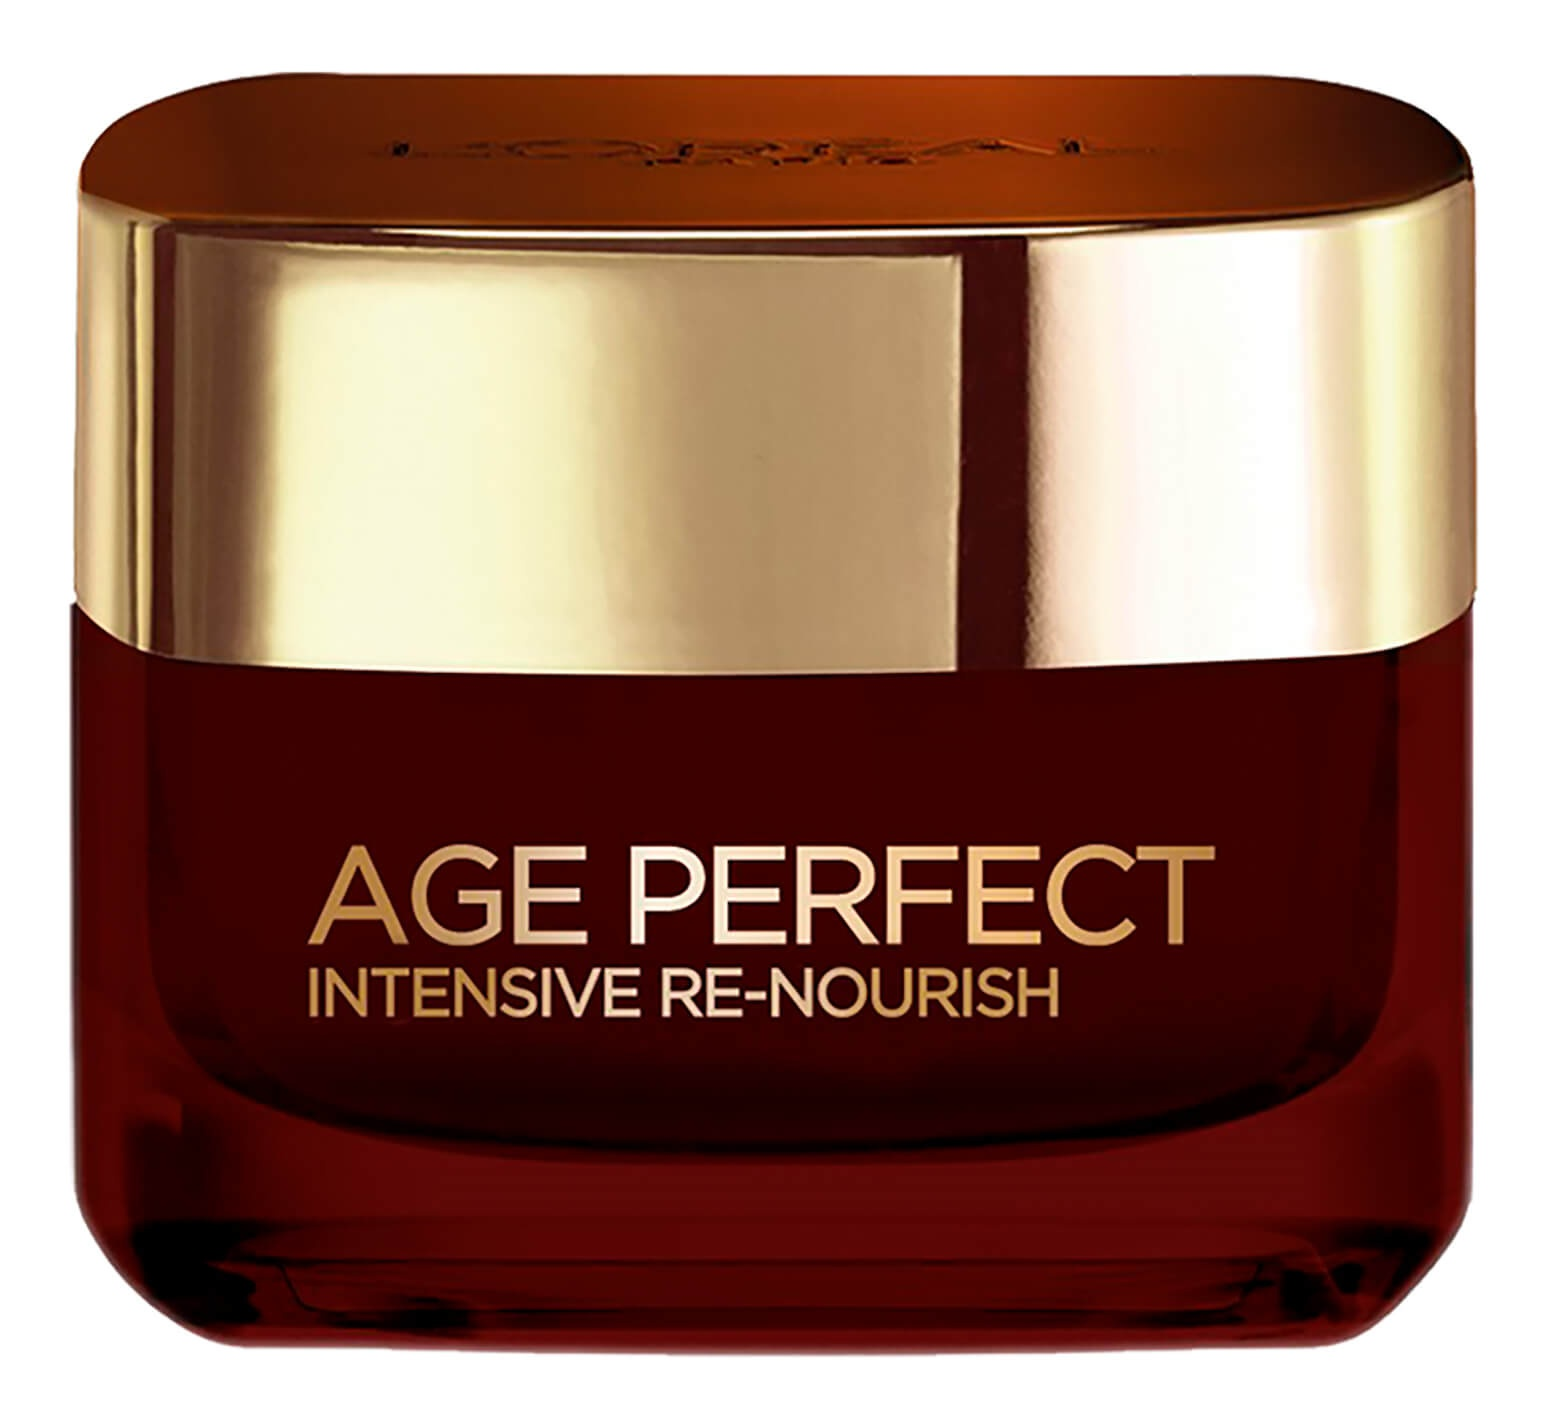 L'Oreal Paris Age Perfect Intensive Renourish Manuka Honey Day Cream